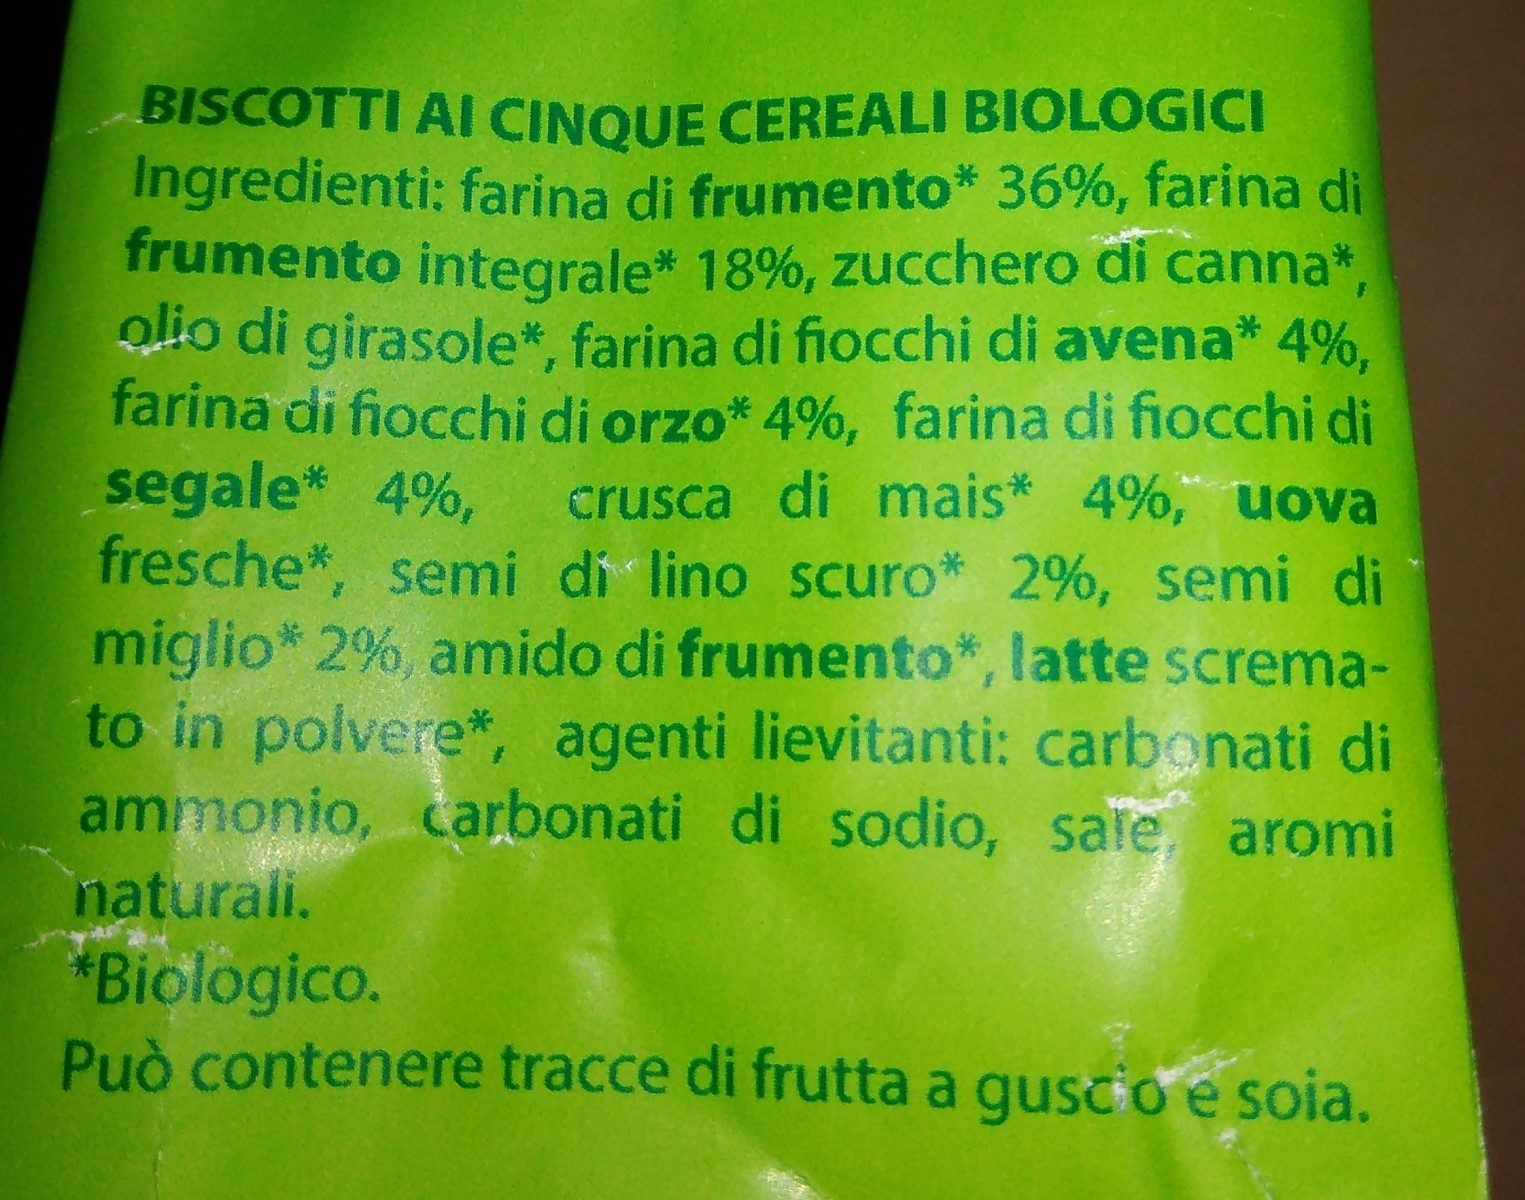 Biscotti con 5 cereali biologici - Ingredients - it